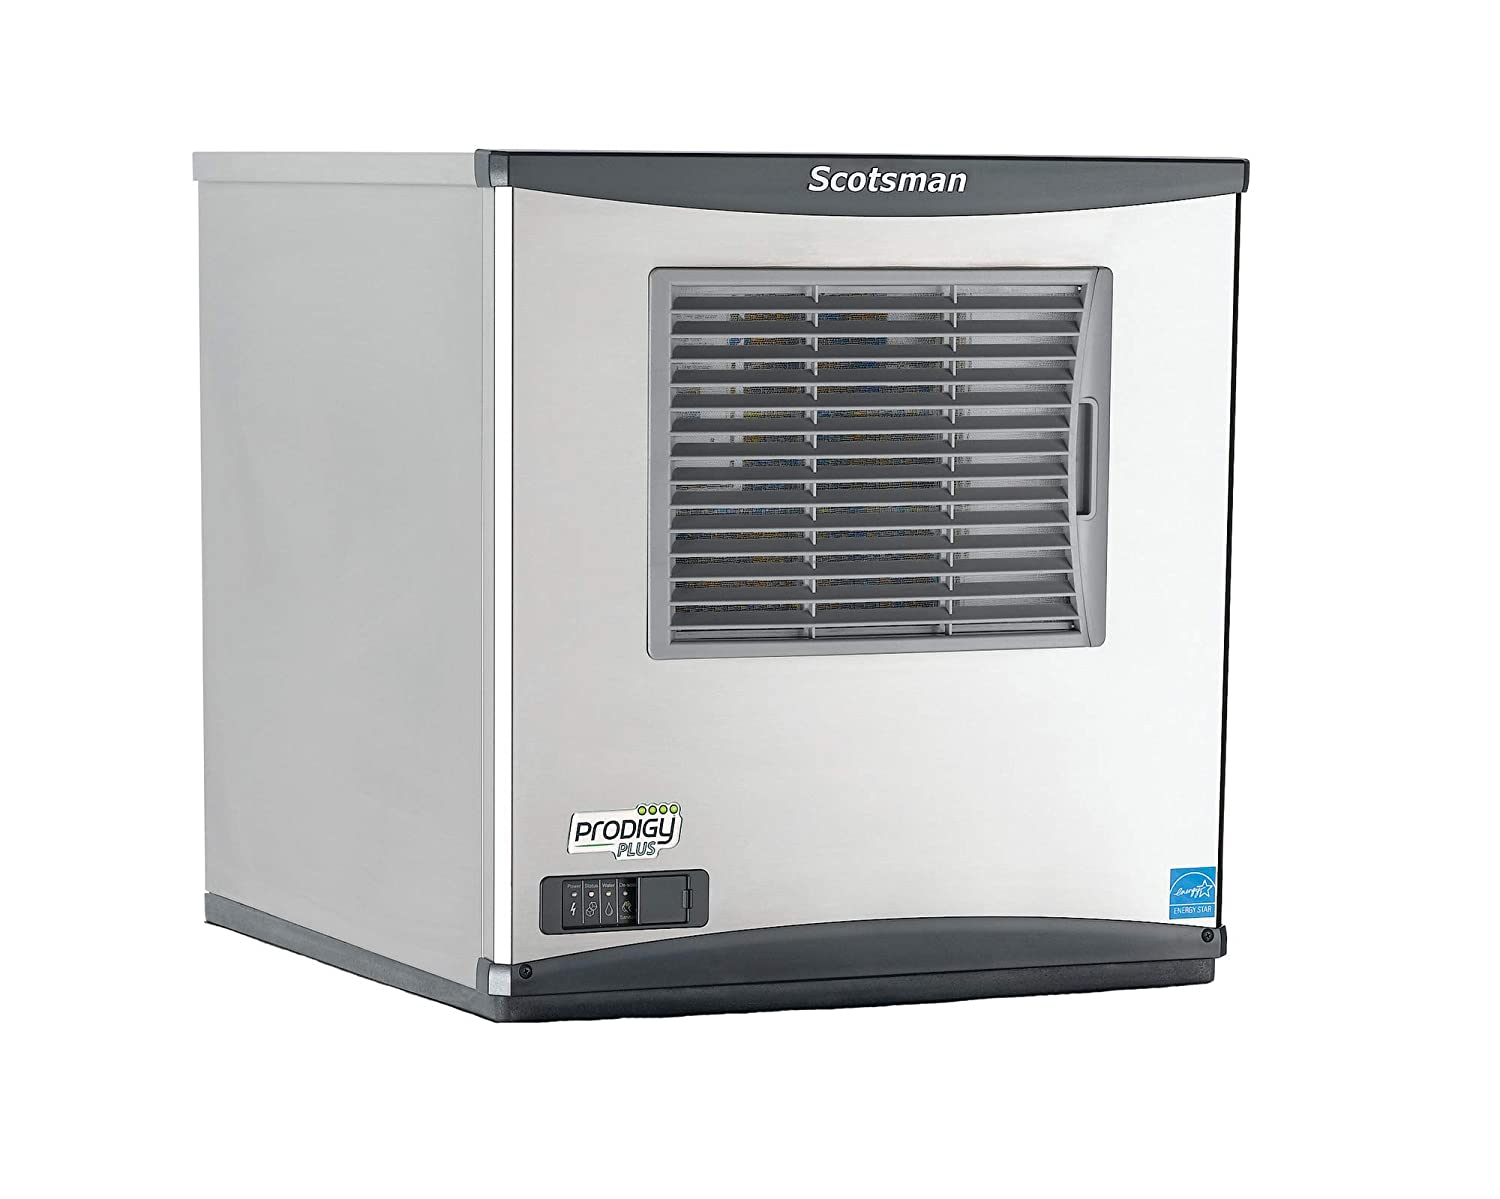 Scotsman F0522A-1 Prodigy Ice Maker flake style air-cooled up to 450 lb product